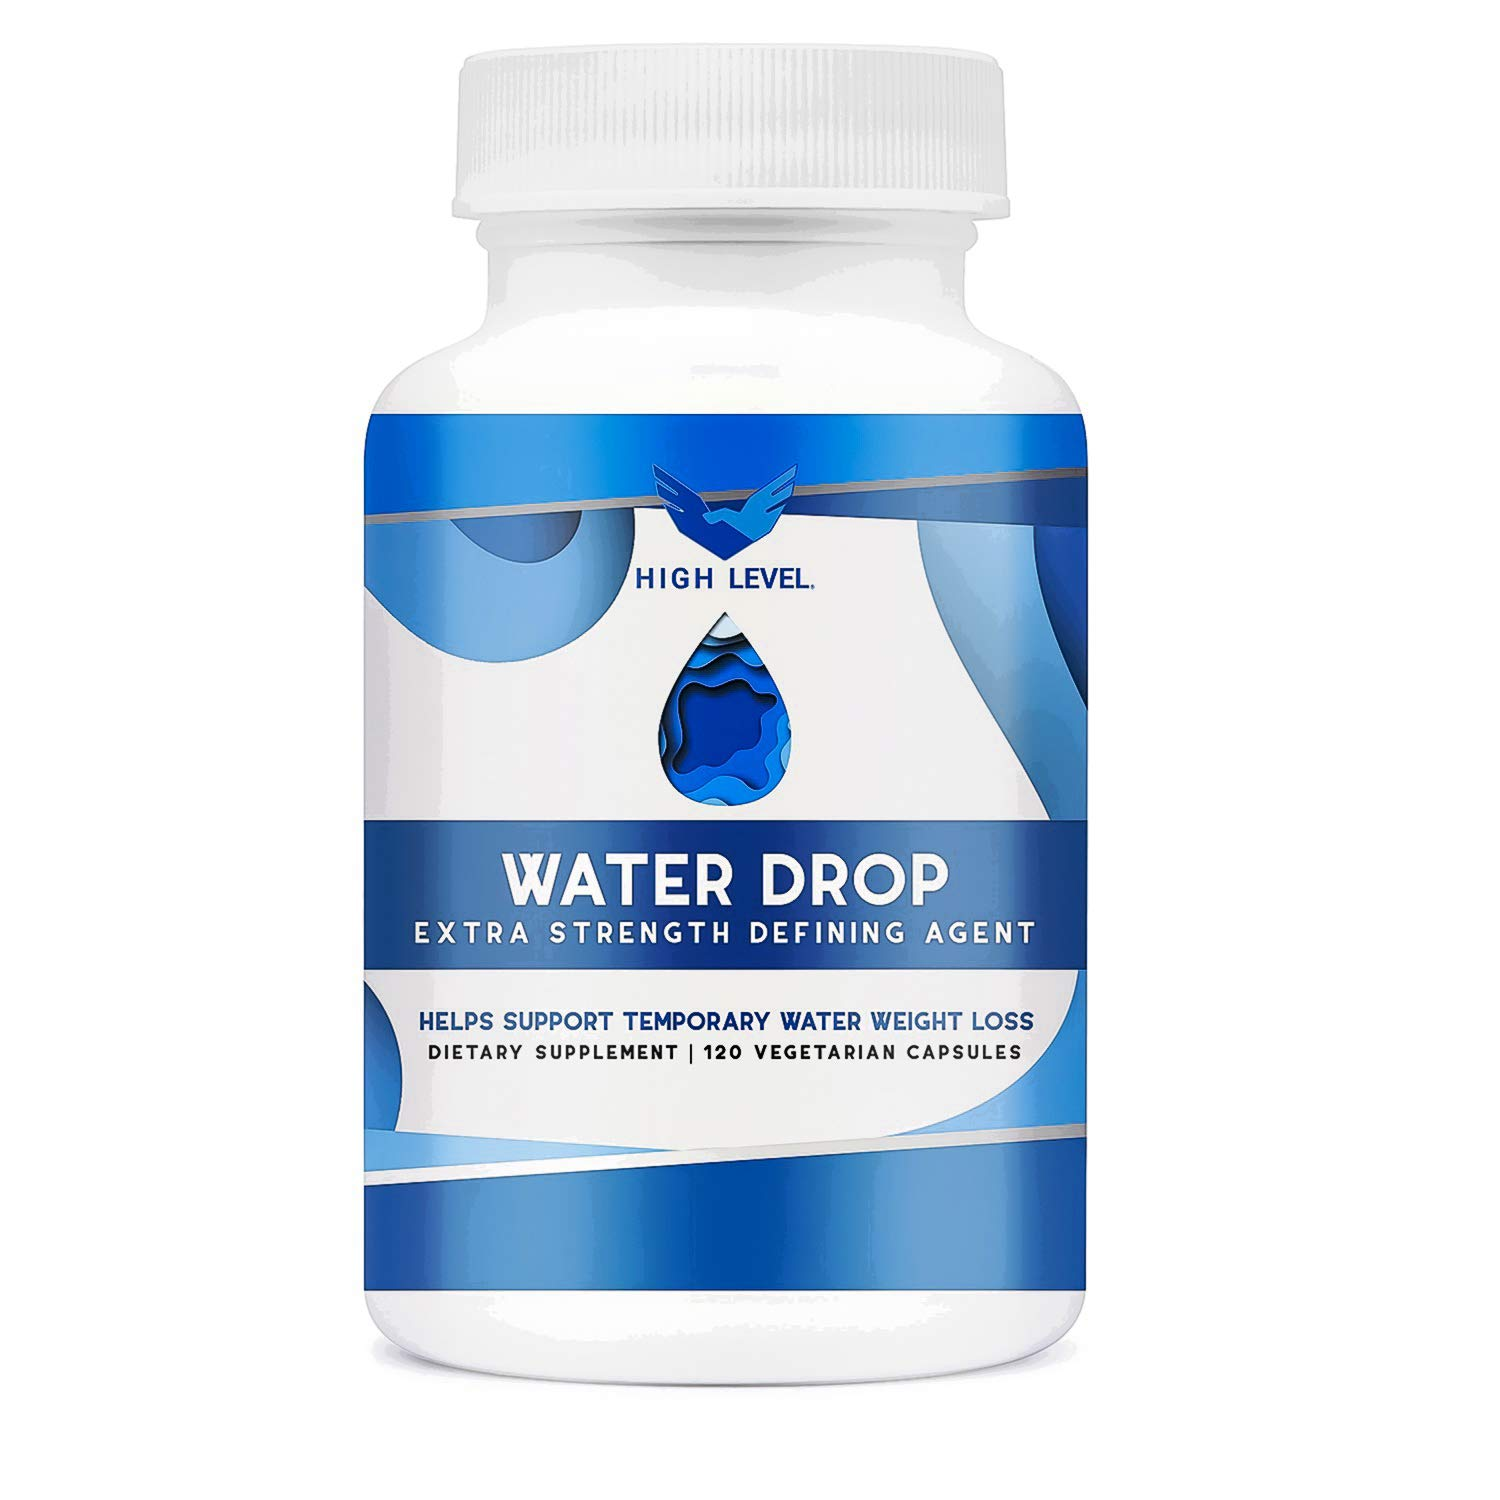 High Level Water Drop | Ultra Premium Water Pill | Natural Diuretic and Pure Water Weight Relief | Extra Strength Defining Agent | Supports Water Weight Loss | 120 Vegetarian Capsules by High Level (Image #1)